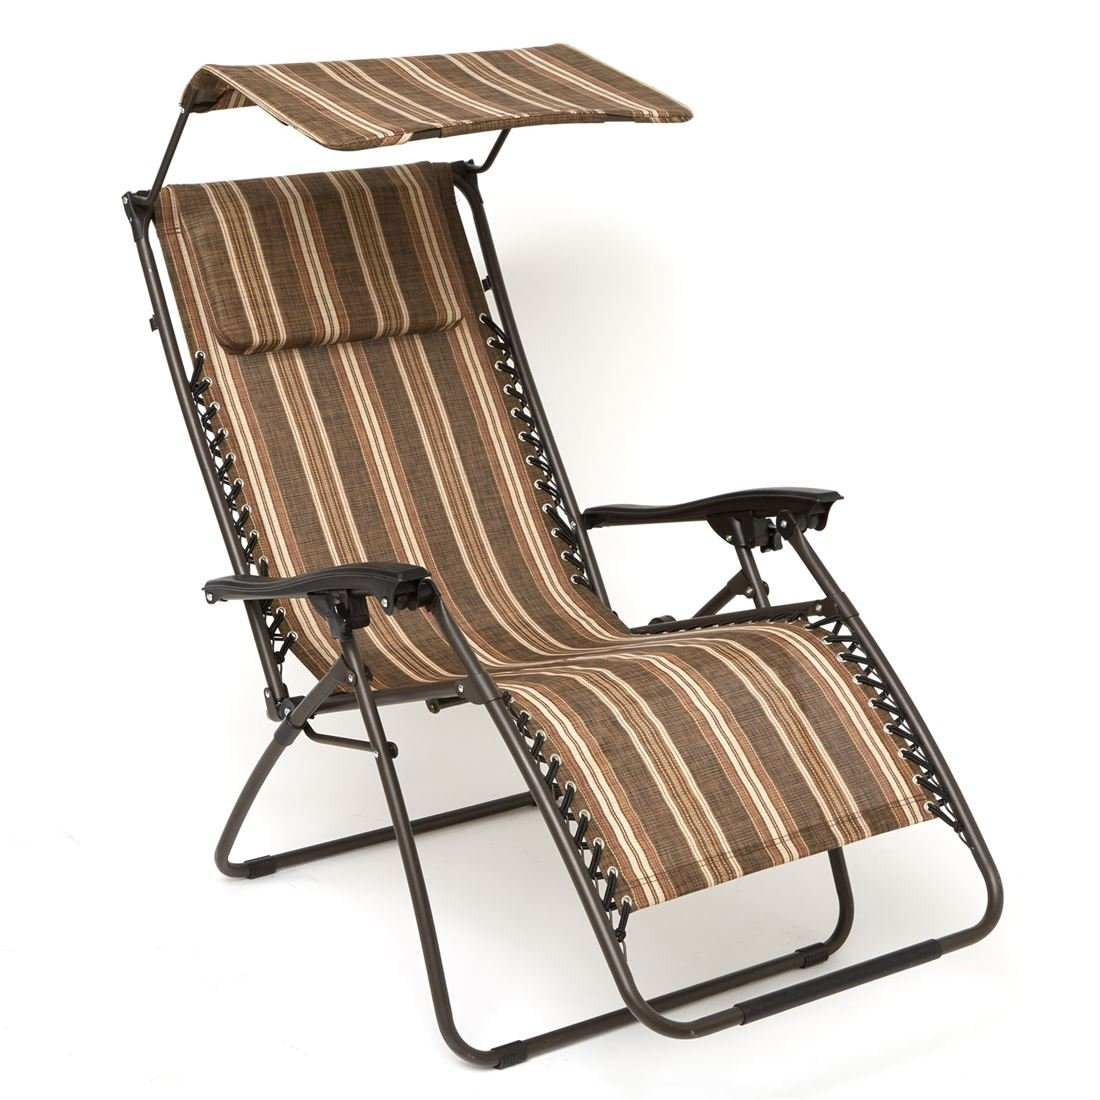 BrylaneHome Zero Gravity Chair With Pillow And Canopy (Brown Stripe,0)